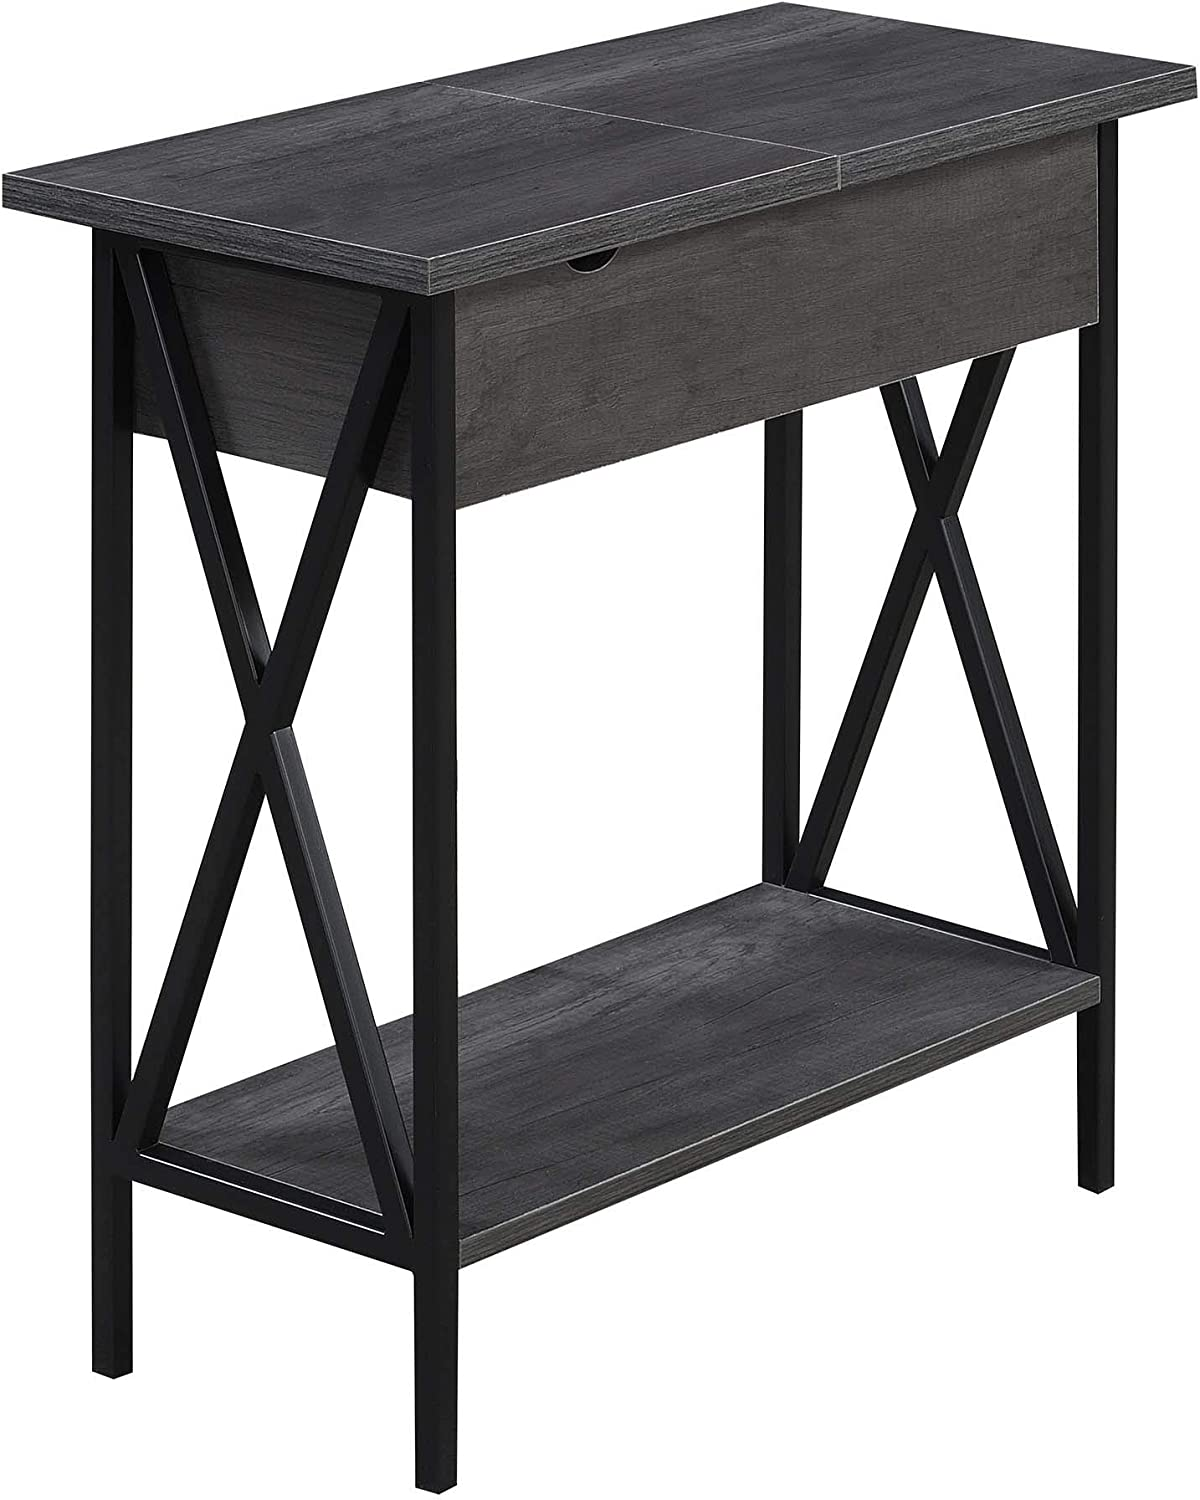 Convenience Concepts Tucson Flip Top End Table with Charging Station, Charcoal Gray/Black